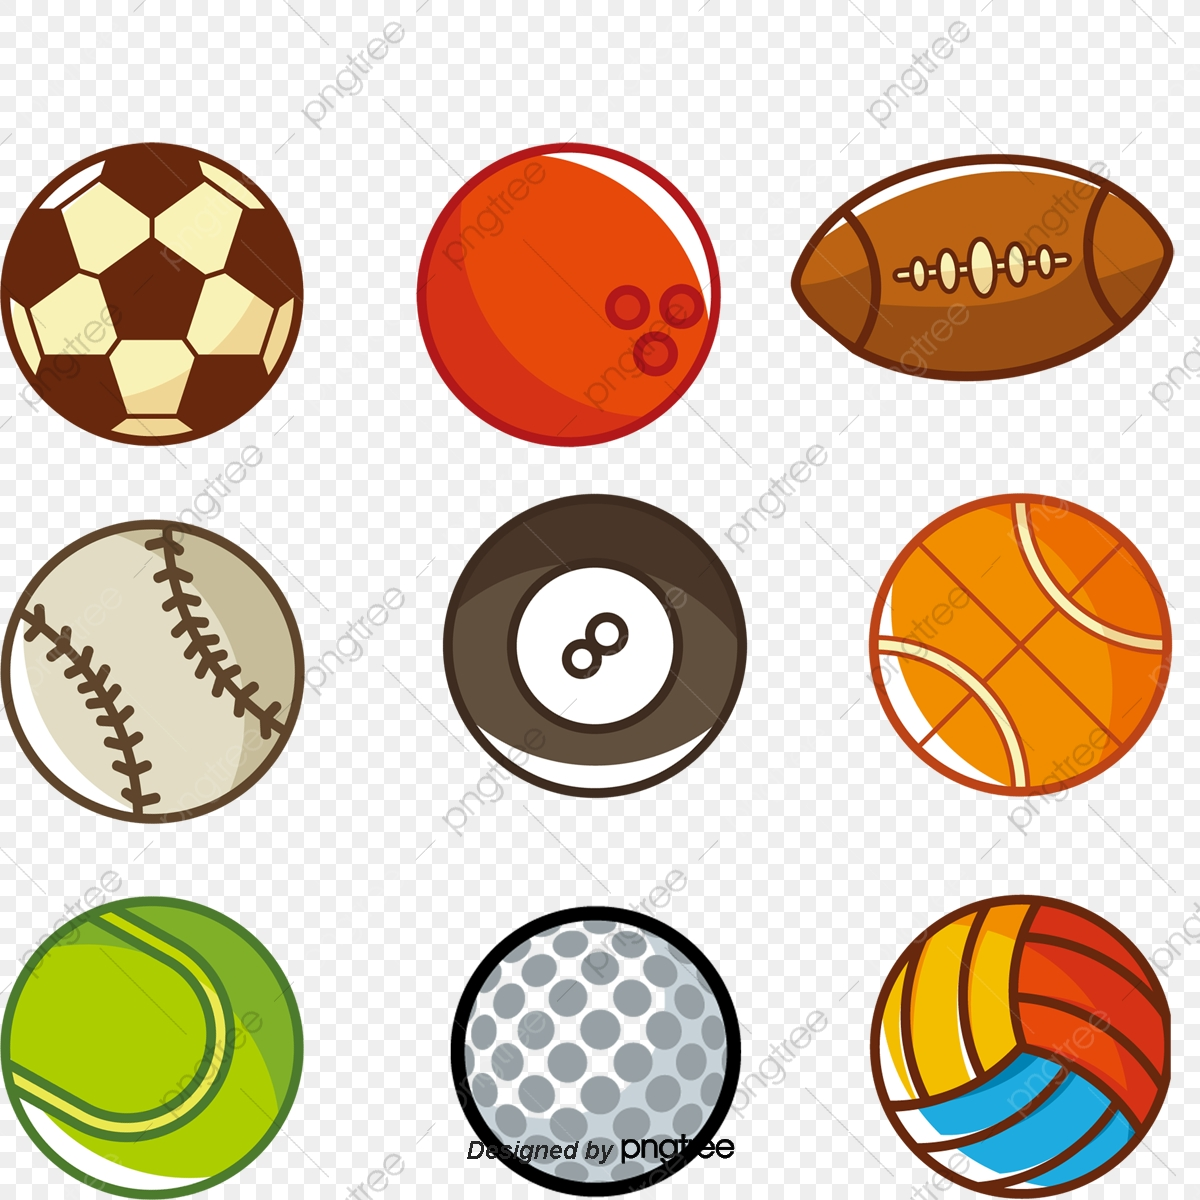 Vector Sports Ball Sports Clipart Vector Diagram Ball Png Transparent Clipart Image And Psd File For Free Download